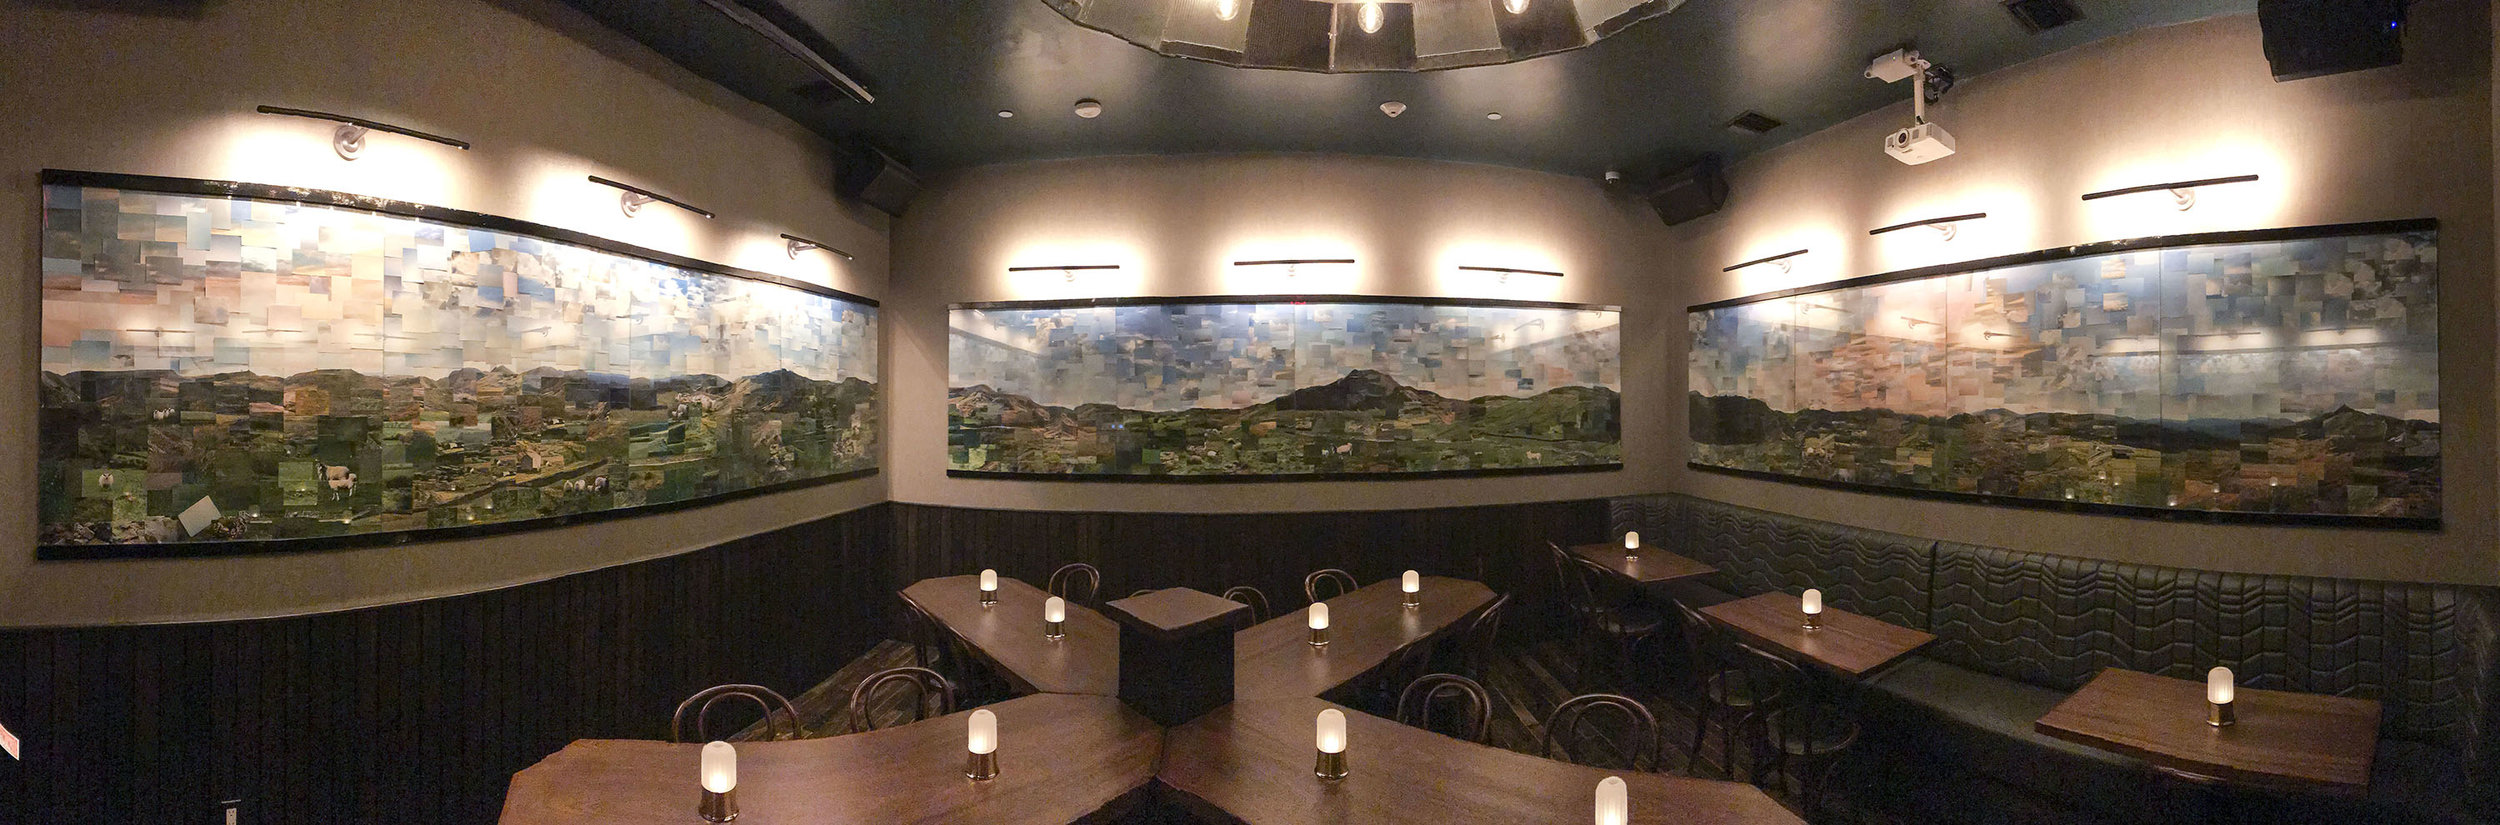 Interior Panoramic of Fine & Rare Bar and Restaurant shot with an iPhone 7 plus